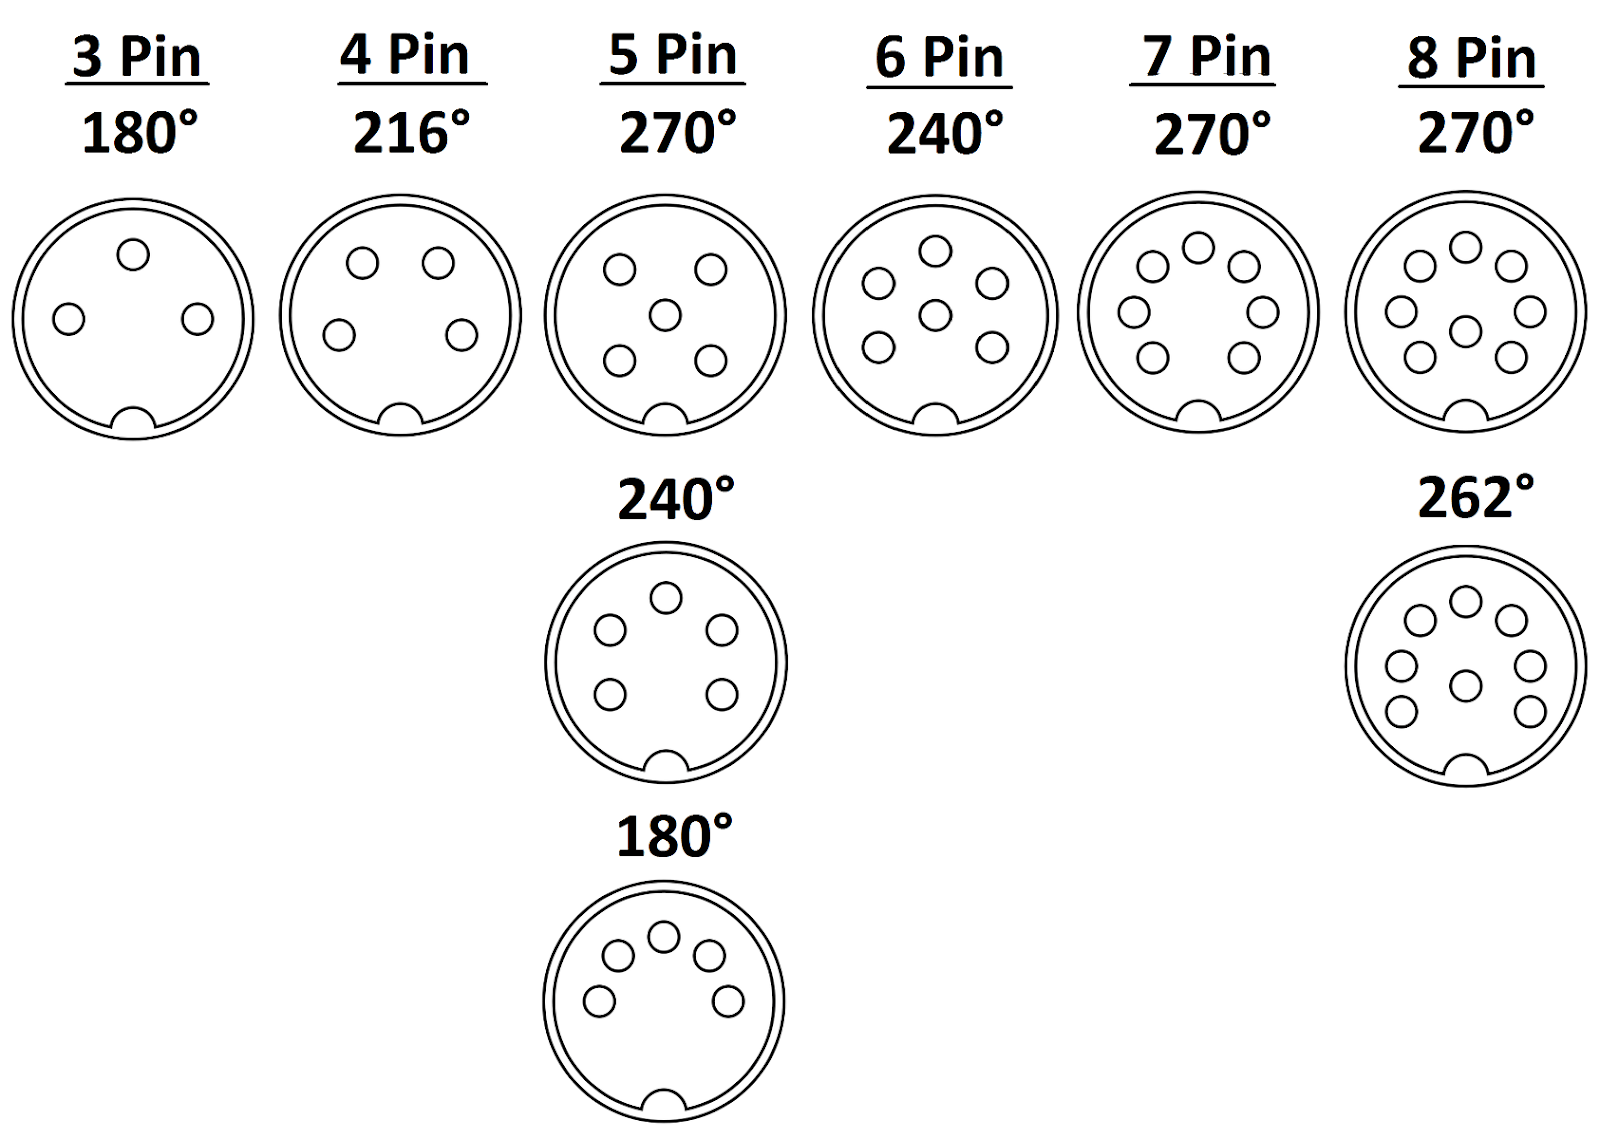 hight resolution of din cable connector 3 pin 4 pin 5 pin 6